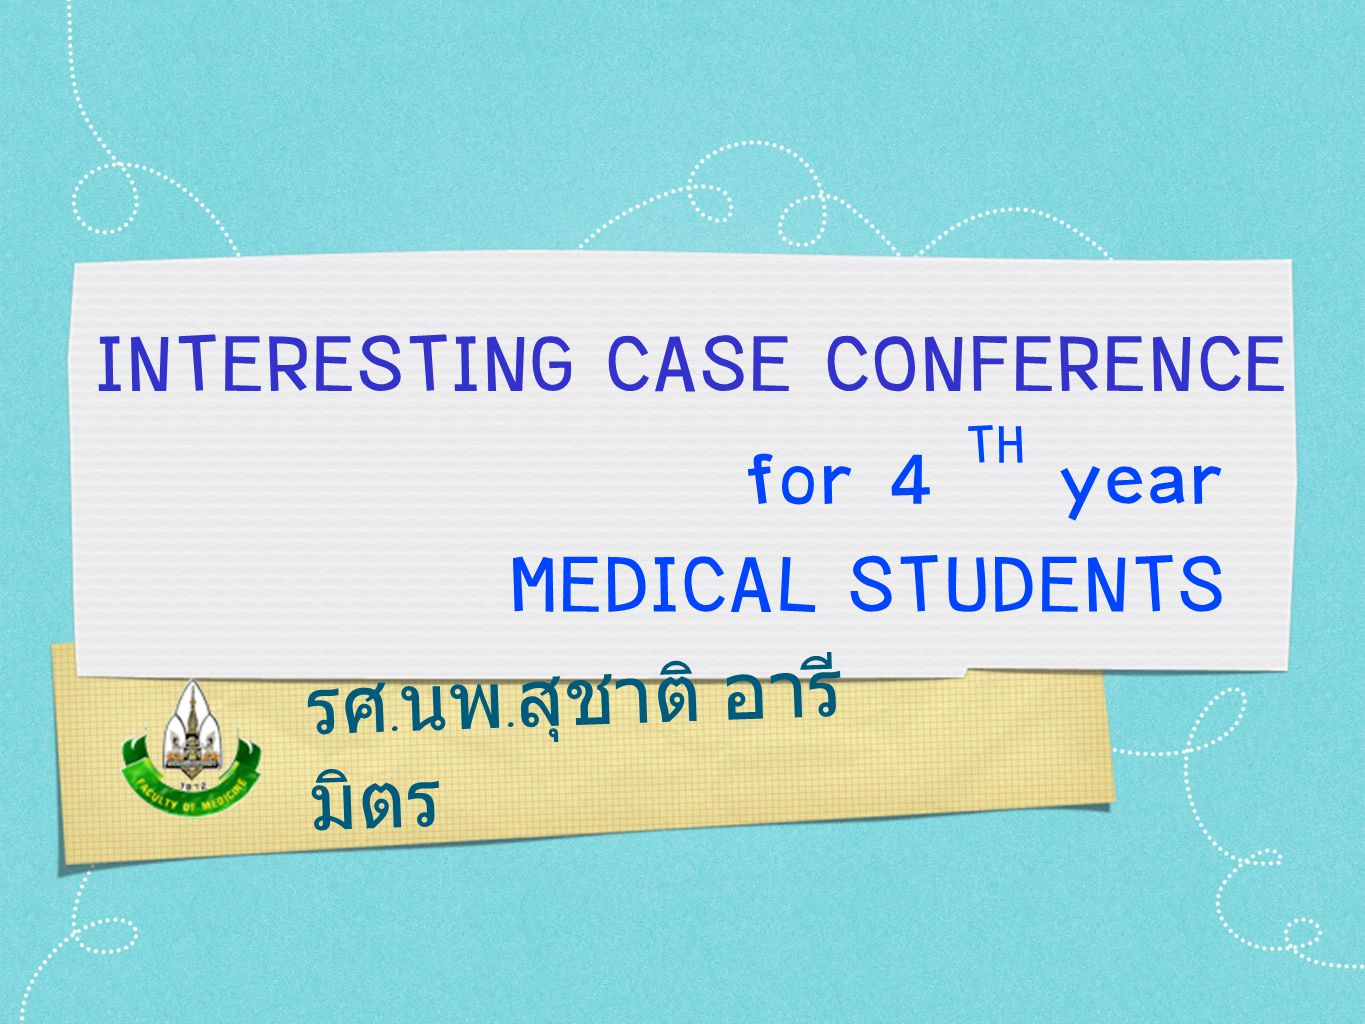 for 4 TH year MEDICAL STUDENTS INTERESTING CASE CONFERENCE รศ.นพ.สุชาติ อารี มิตร